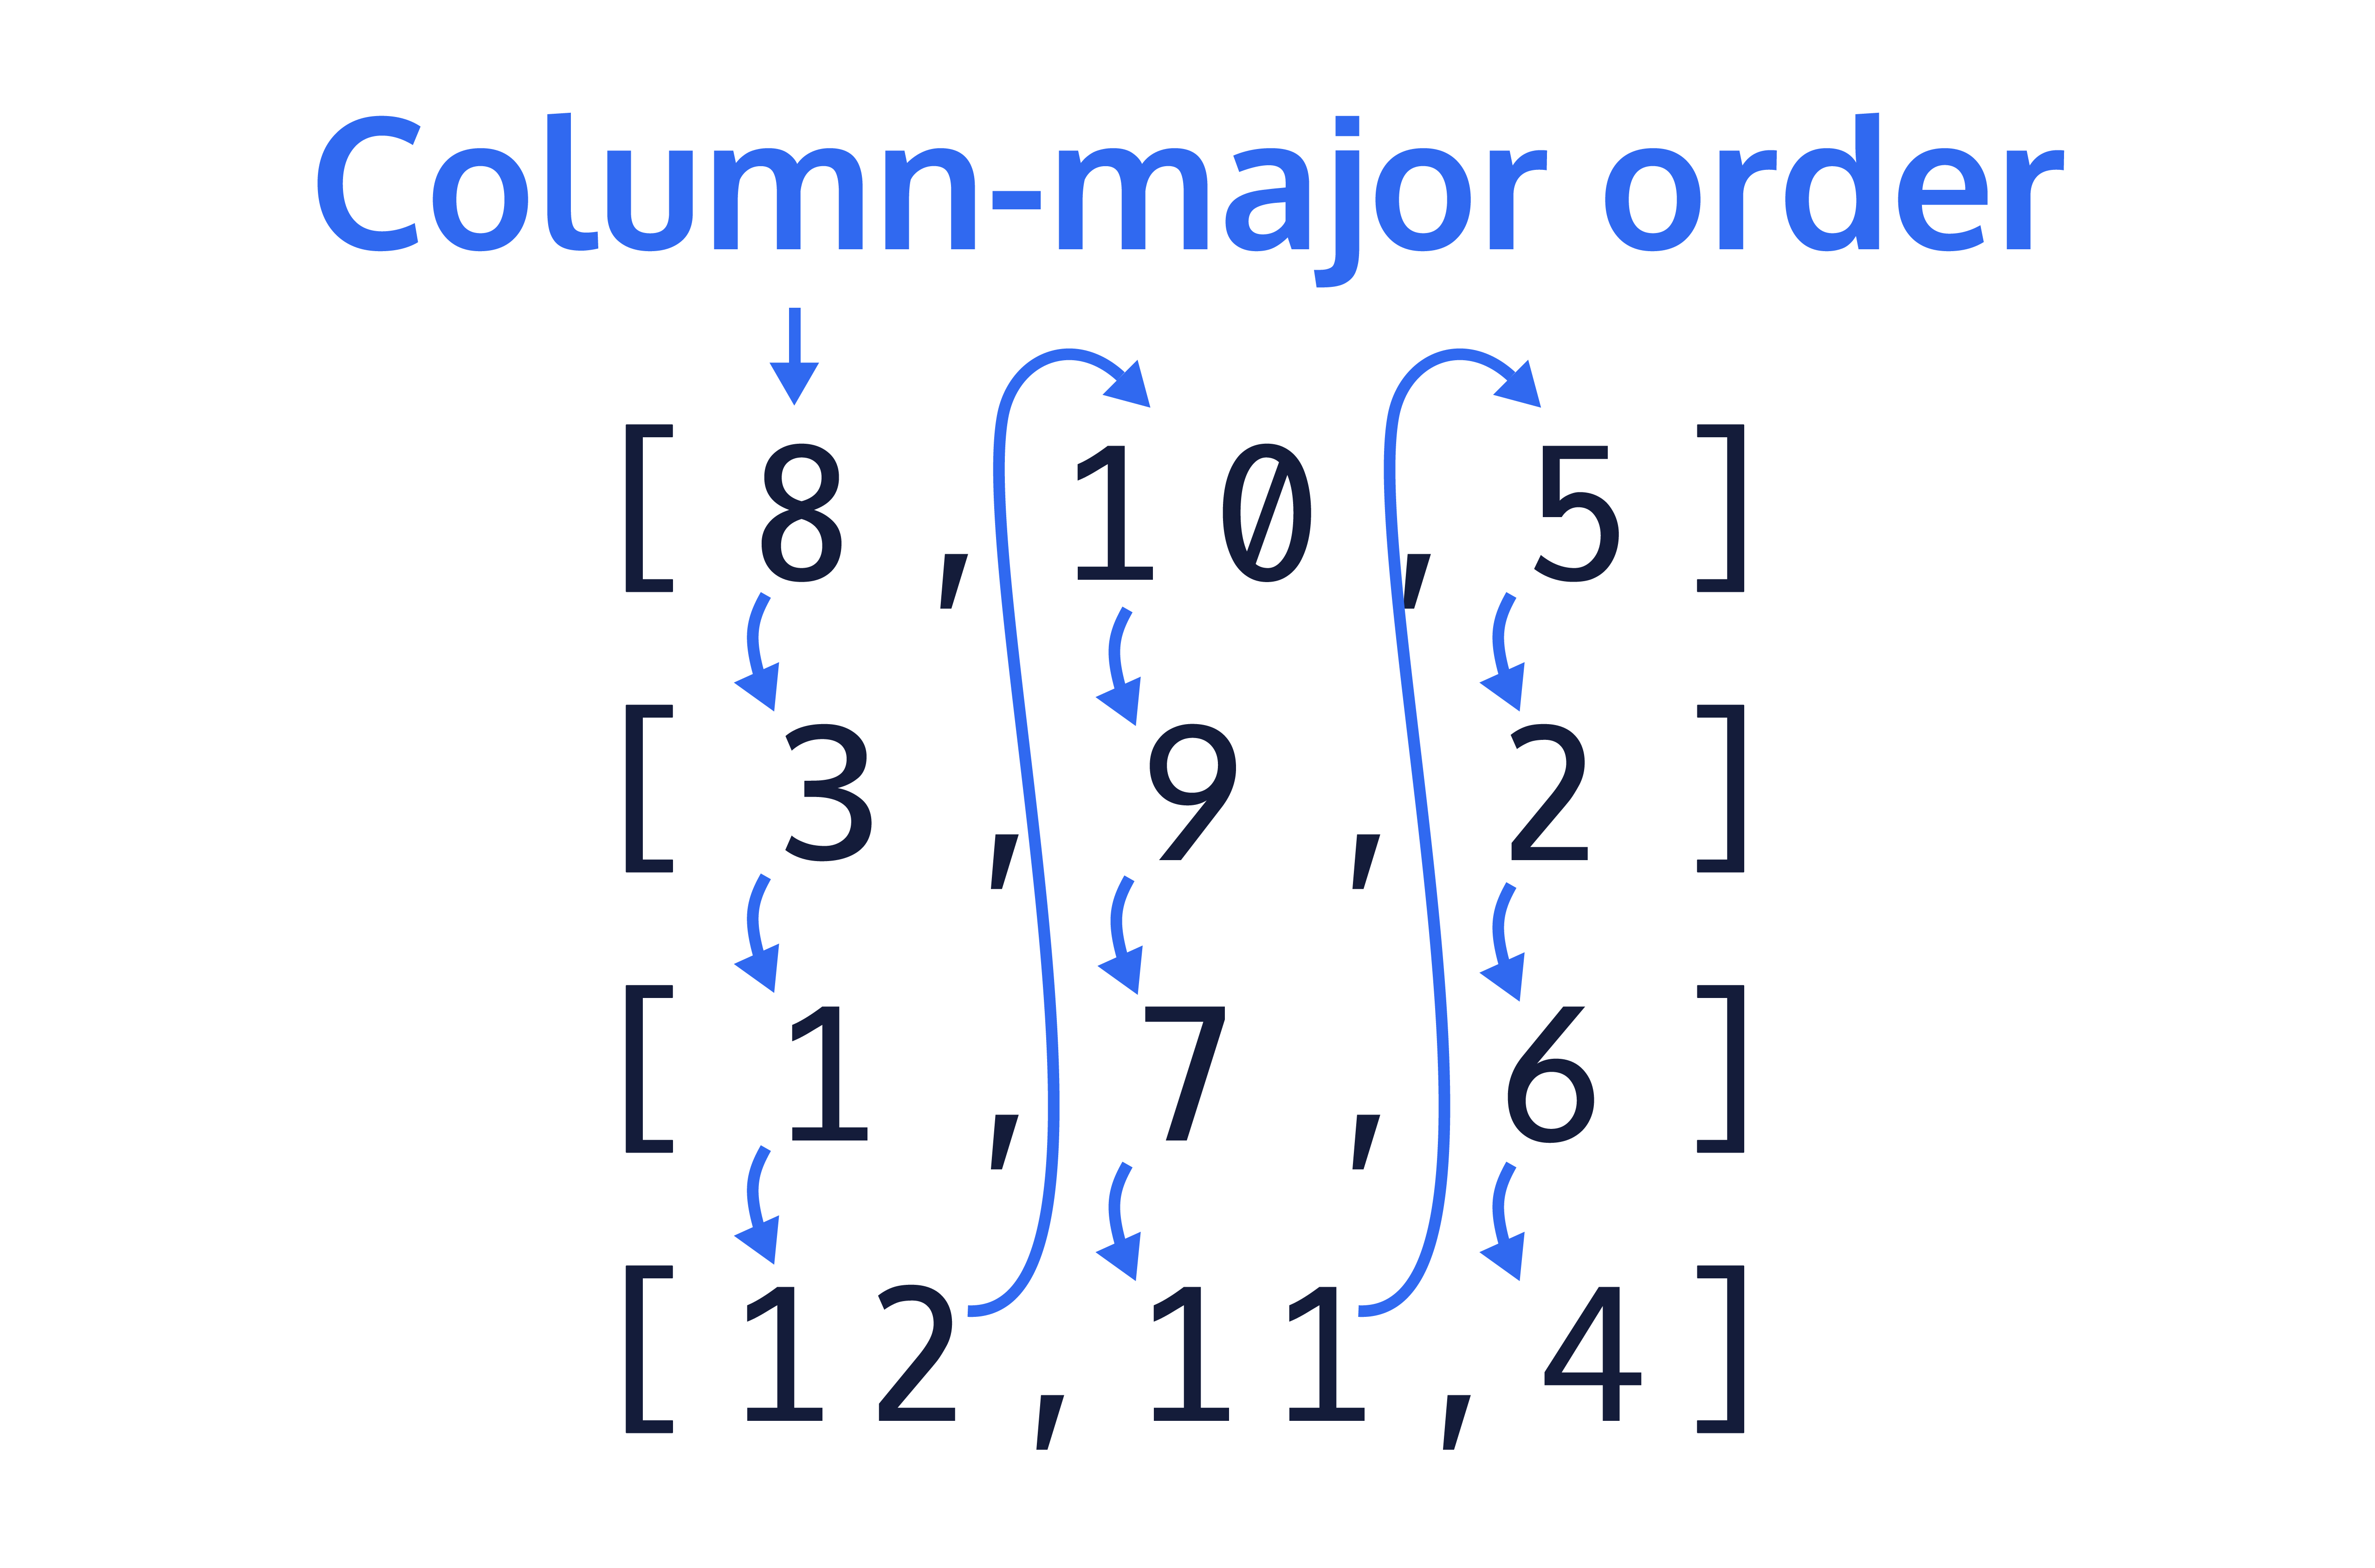 Showing column-major ordering - walking down one column at a time